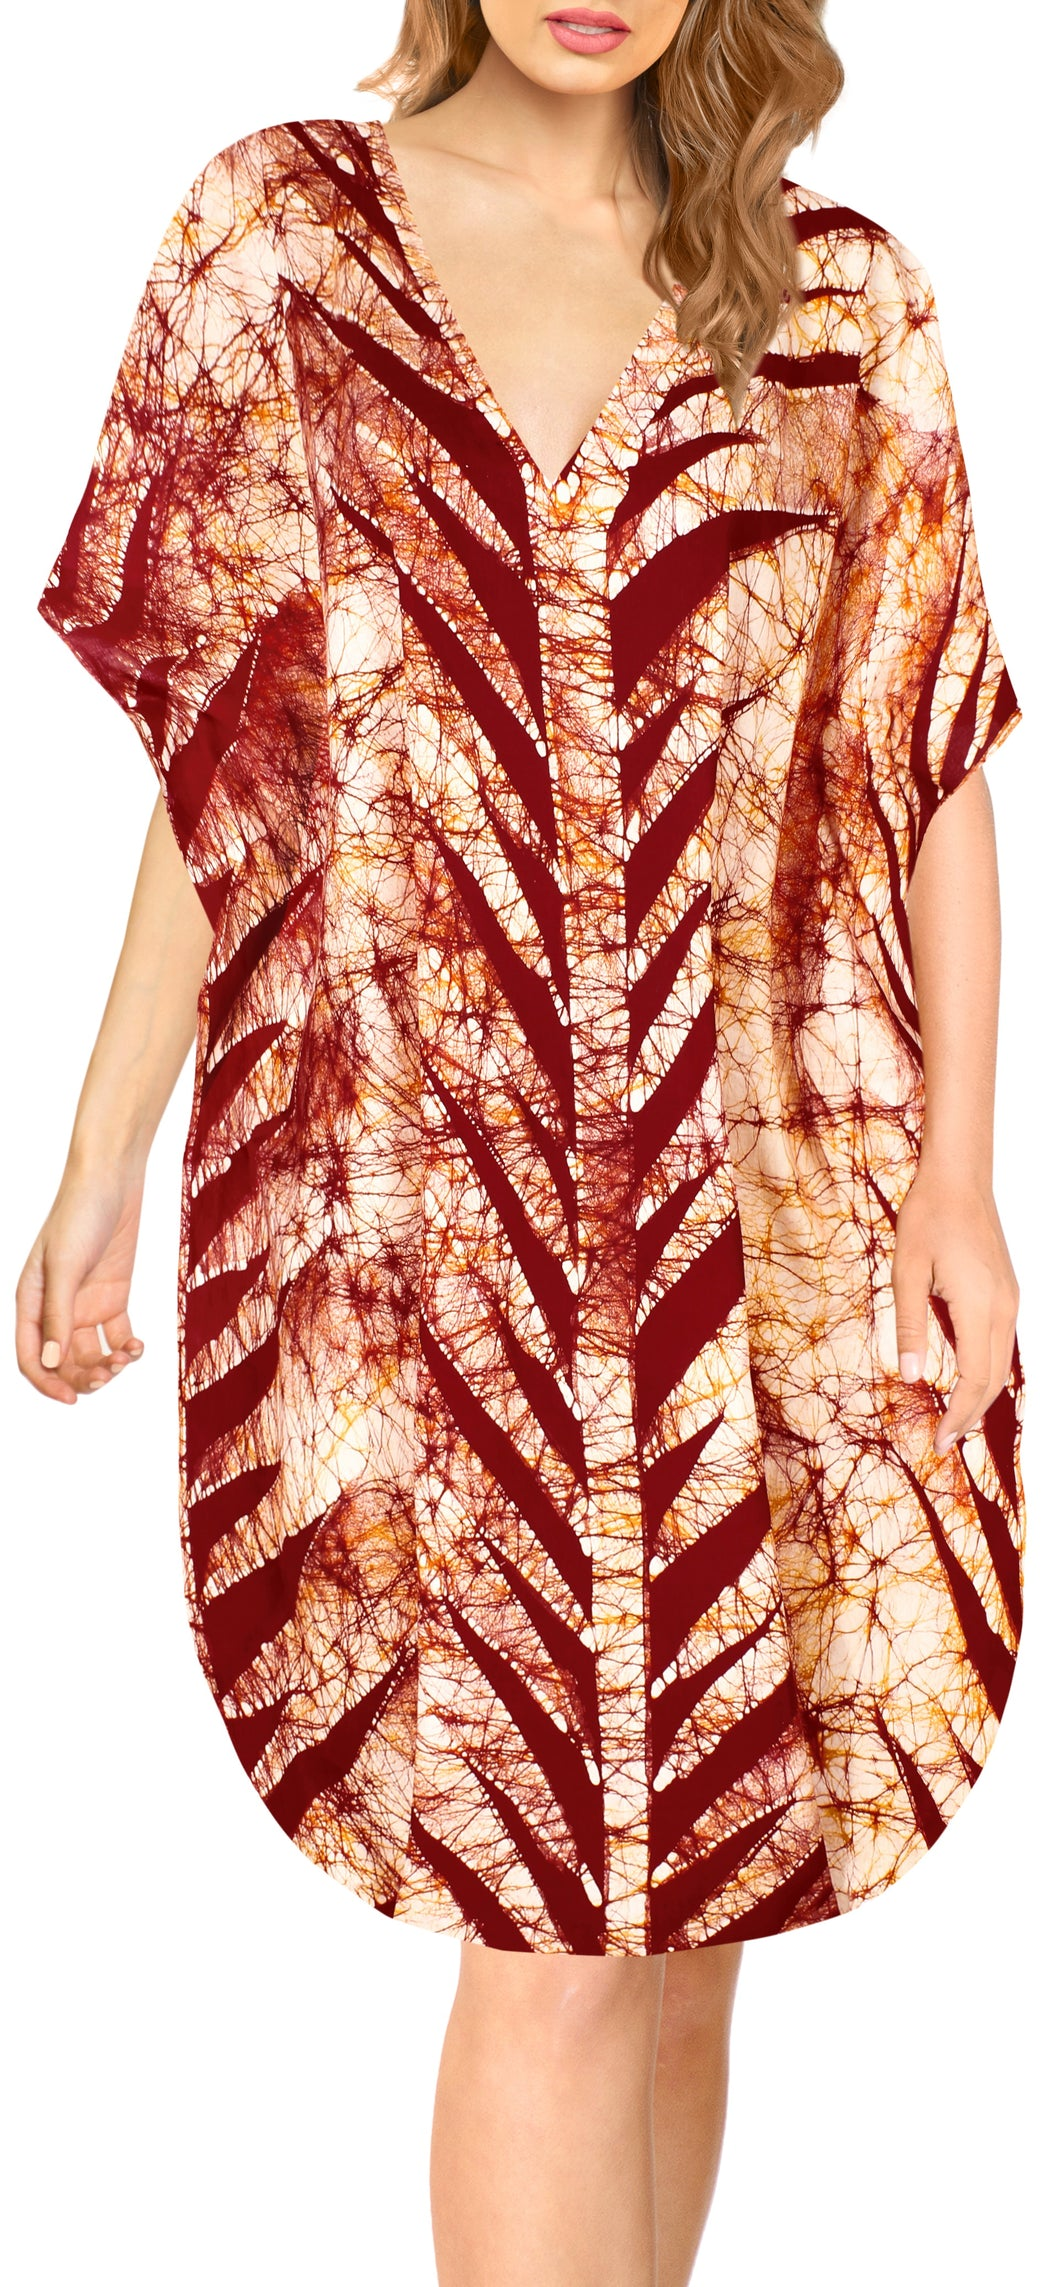 la-leela-cotton-batik-short-caftan-vacation-top-OSFM 14-18W [L- 2X]-Pumpkin Orange_A835